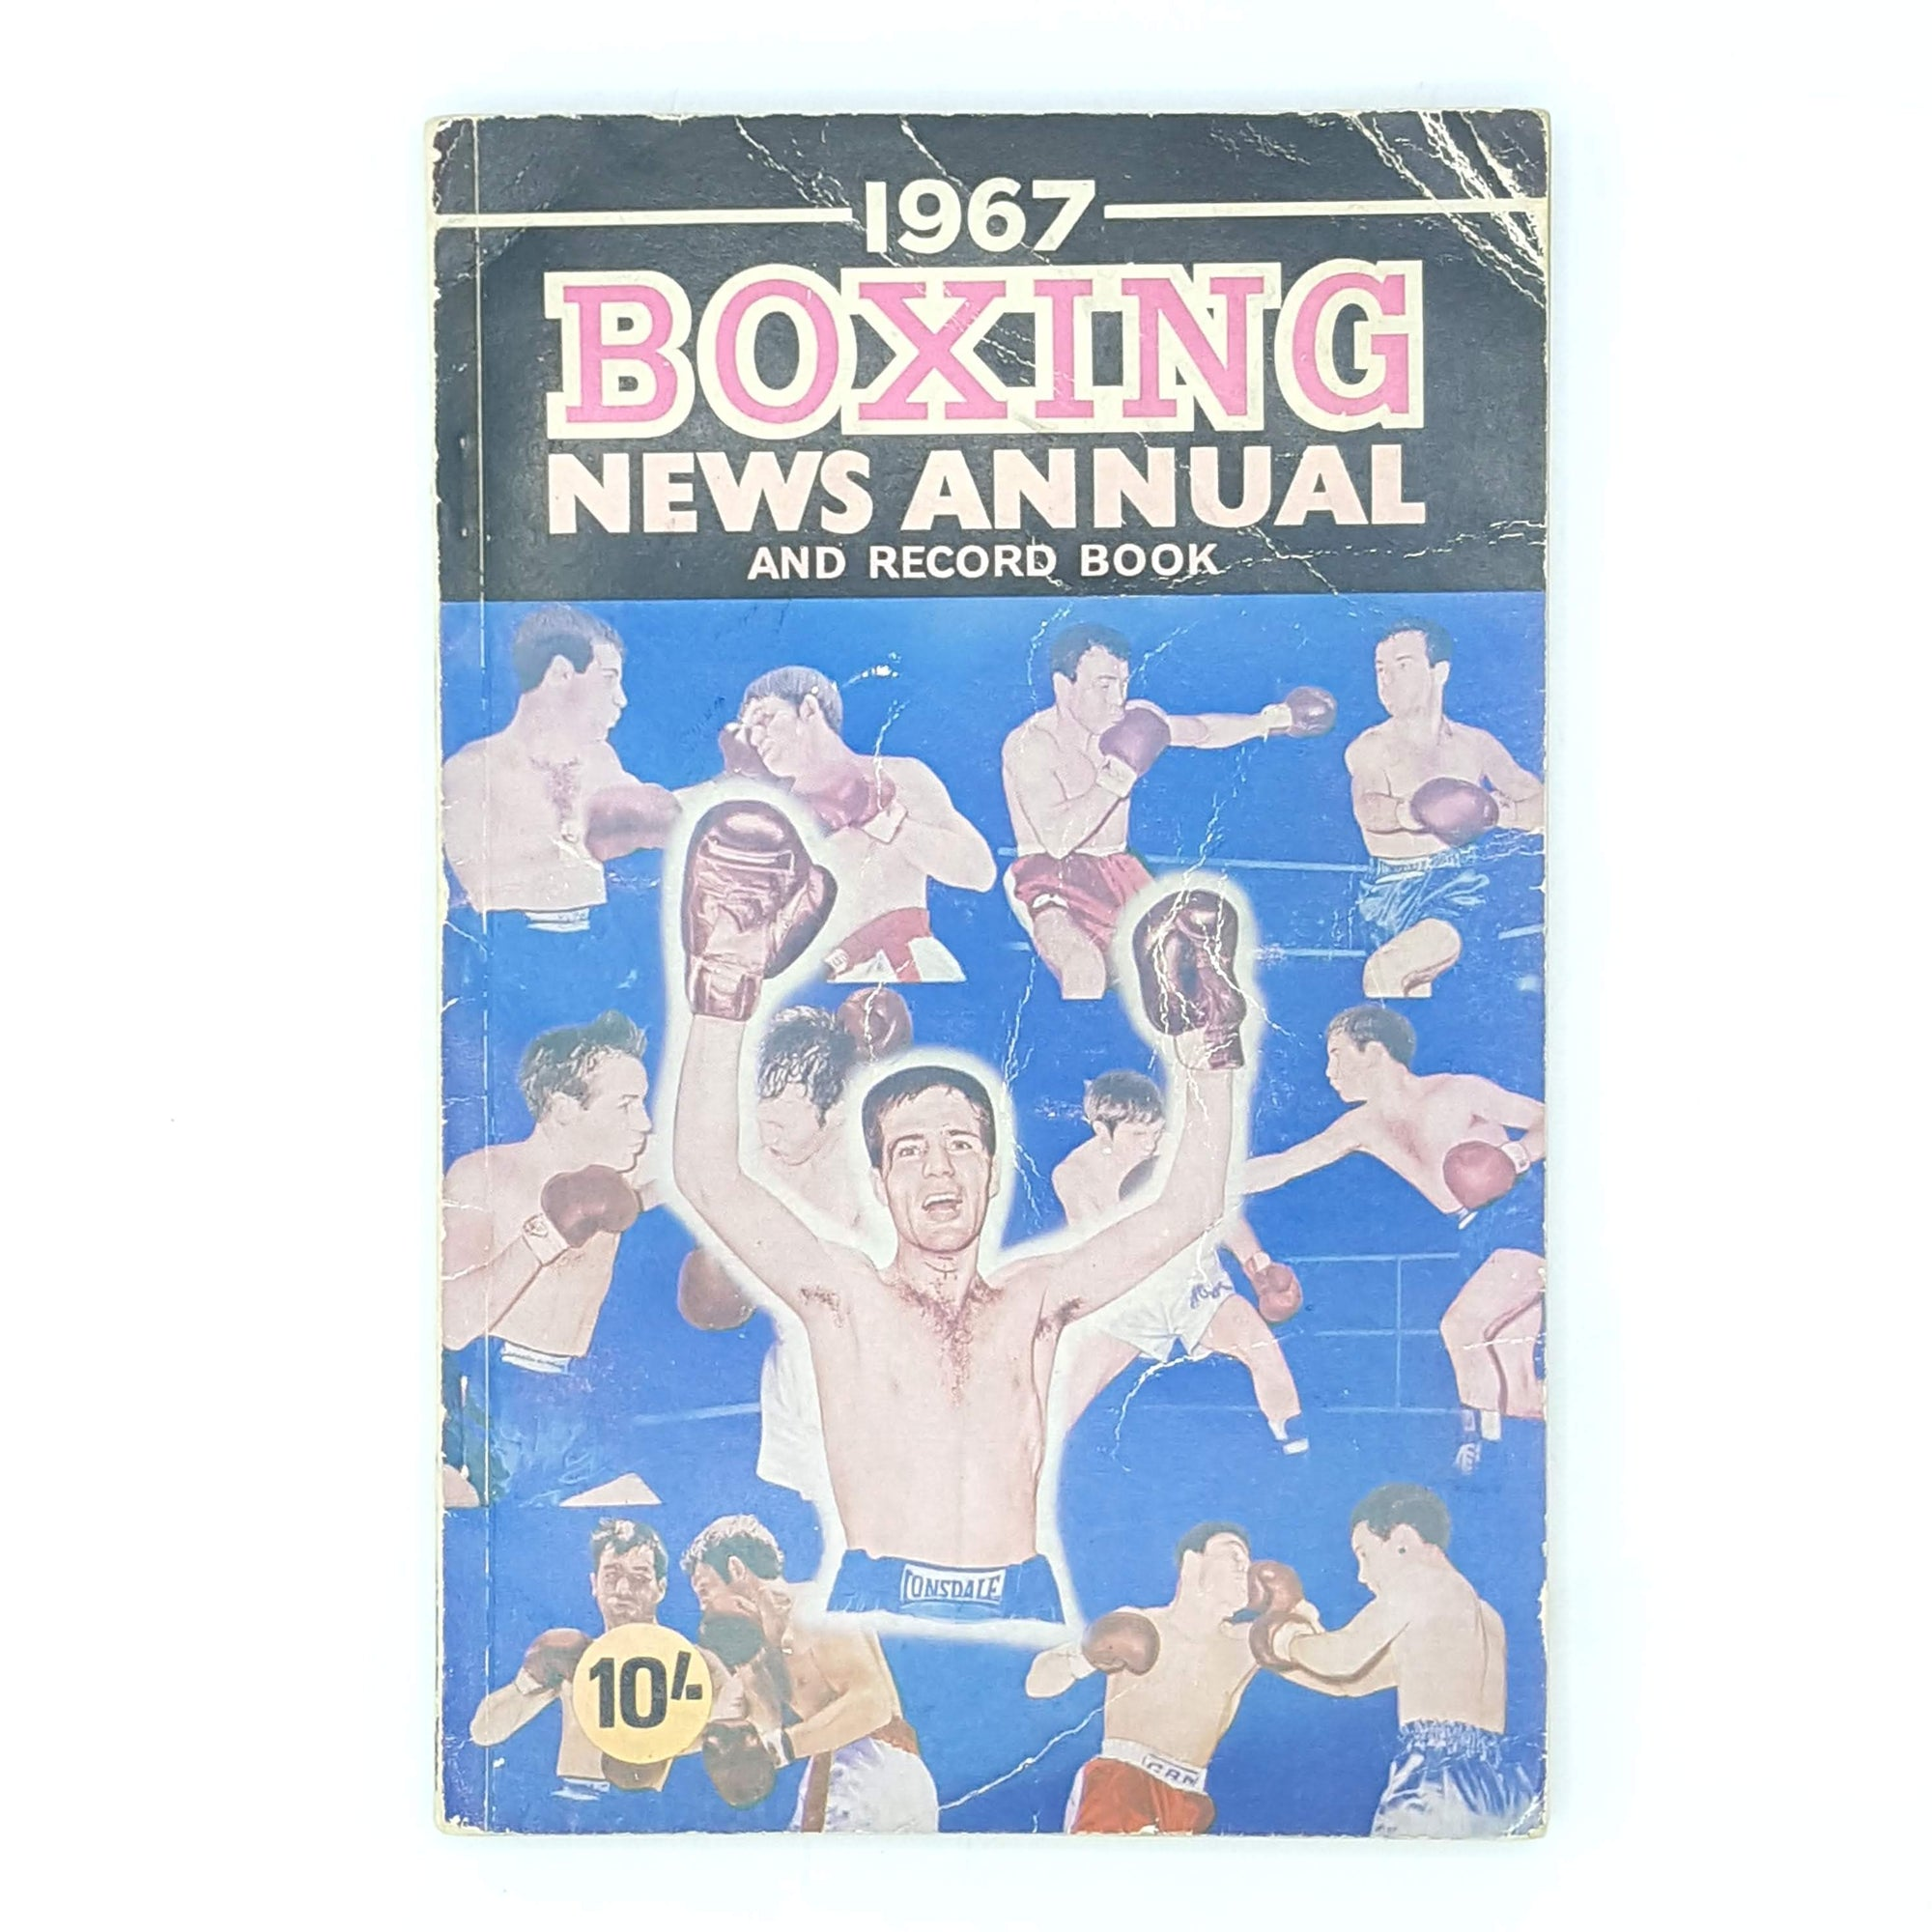 Vintage Boxing News Annual 1967